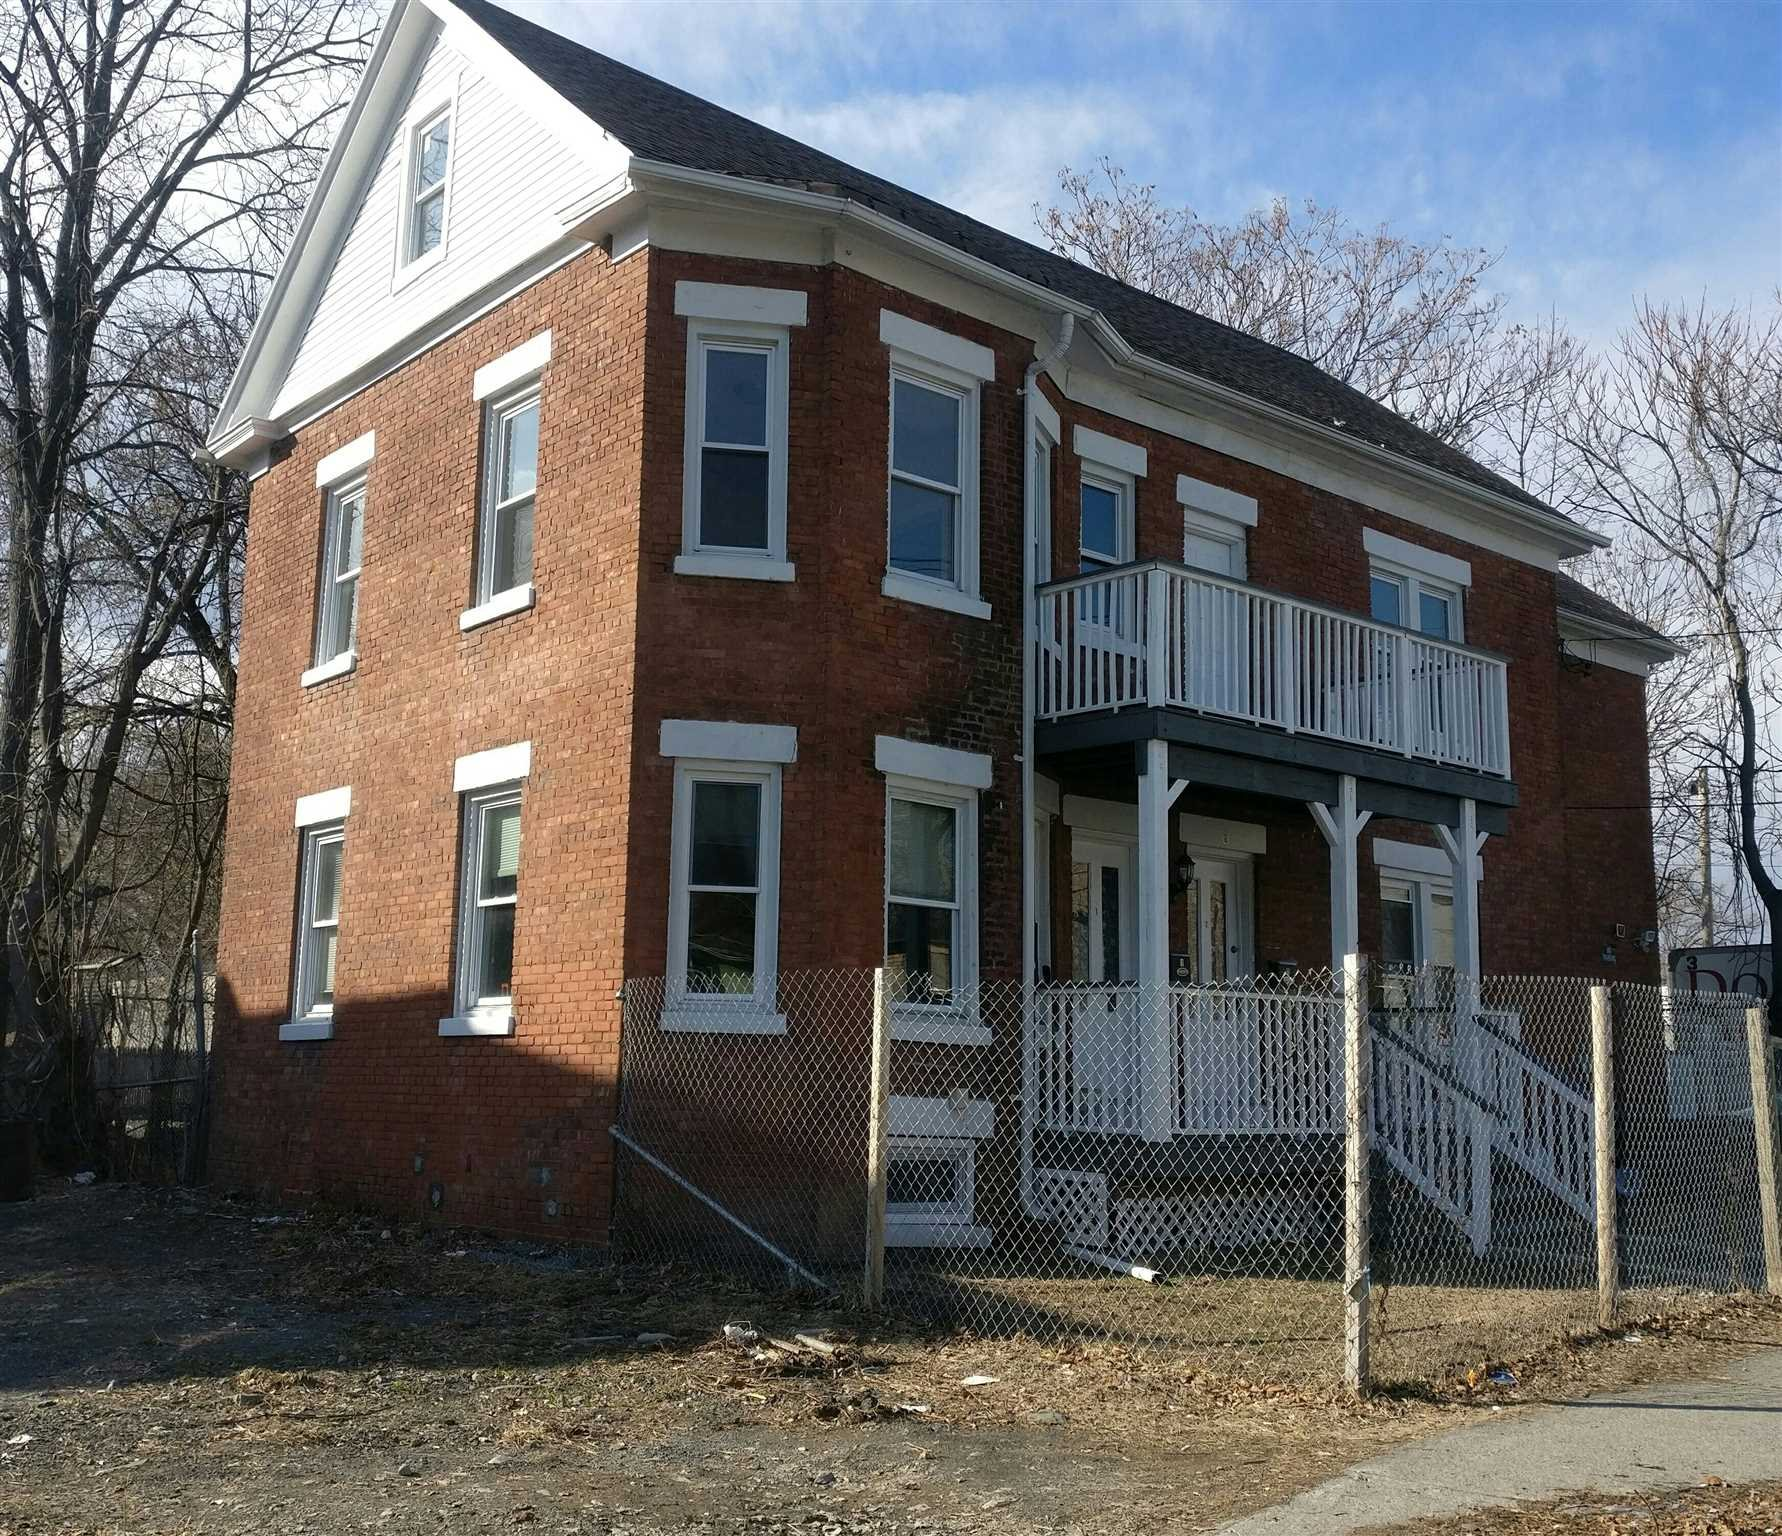 Single Family Home for Rent at 8 PALMER Avenue 8 PALMER Avenue Poughkeepsie, New York 12601 United States